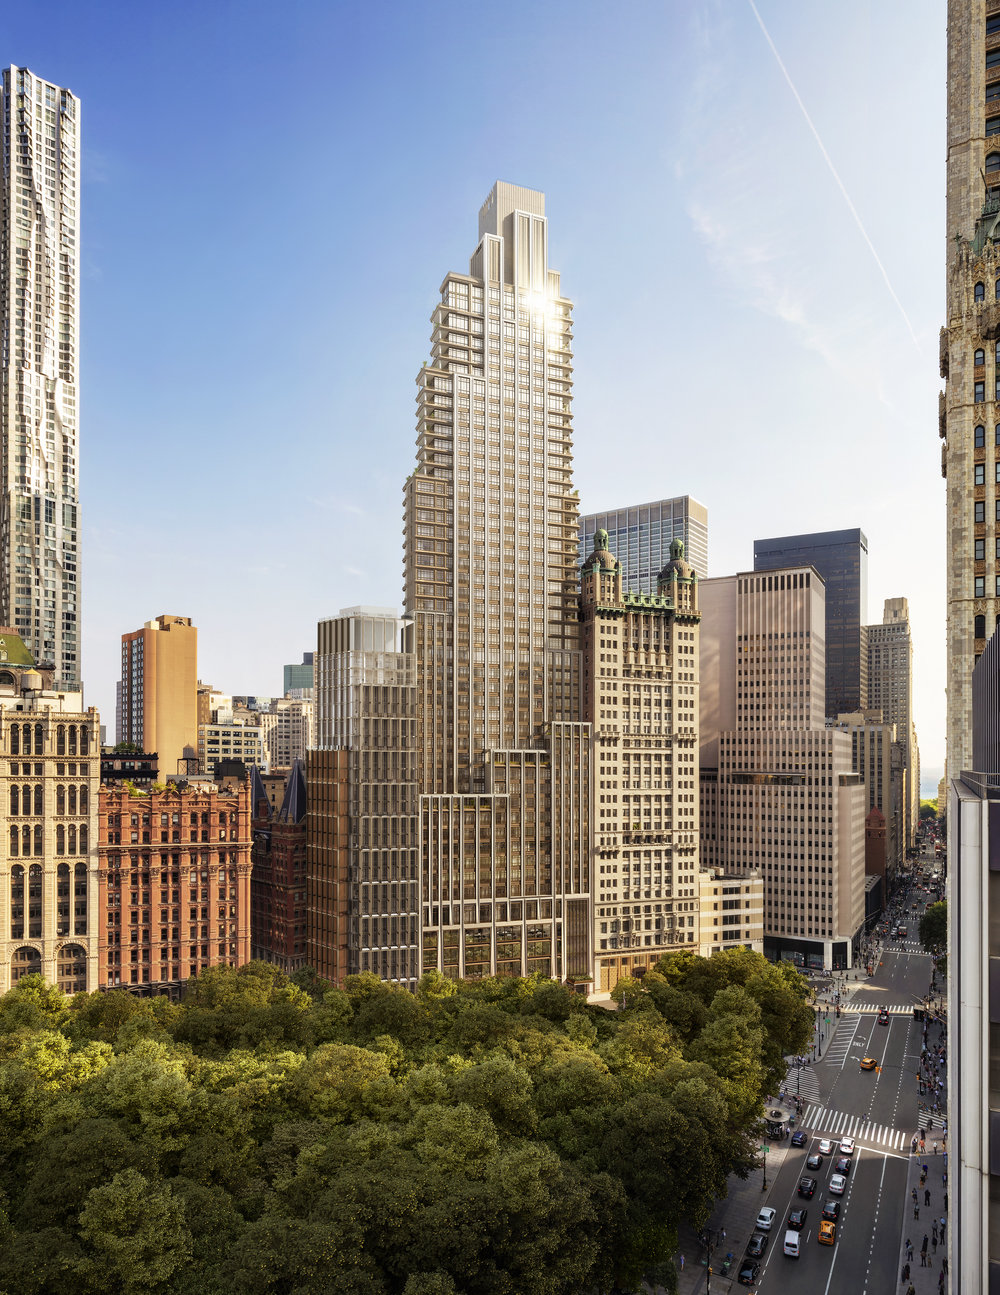 Get A First Look At The Newly Unveiled Renderings Of 25 Park Row On The Former J&R Music World Site